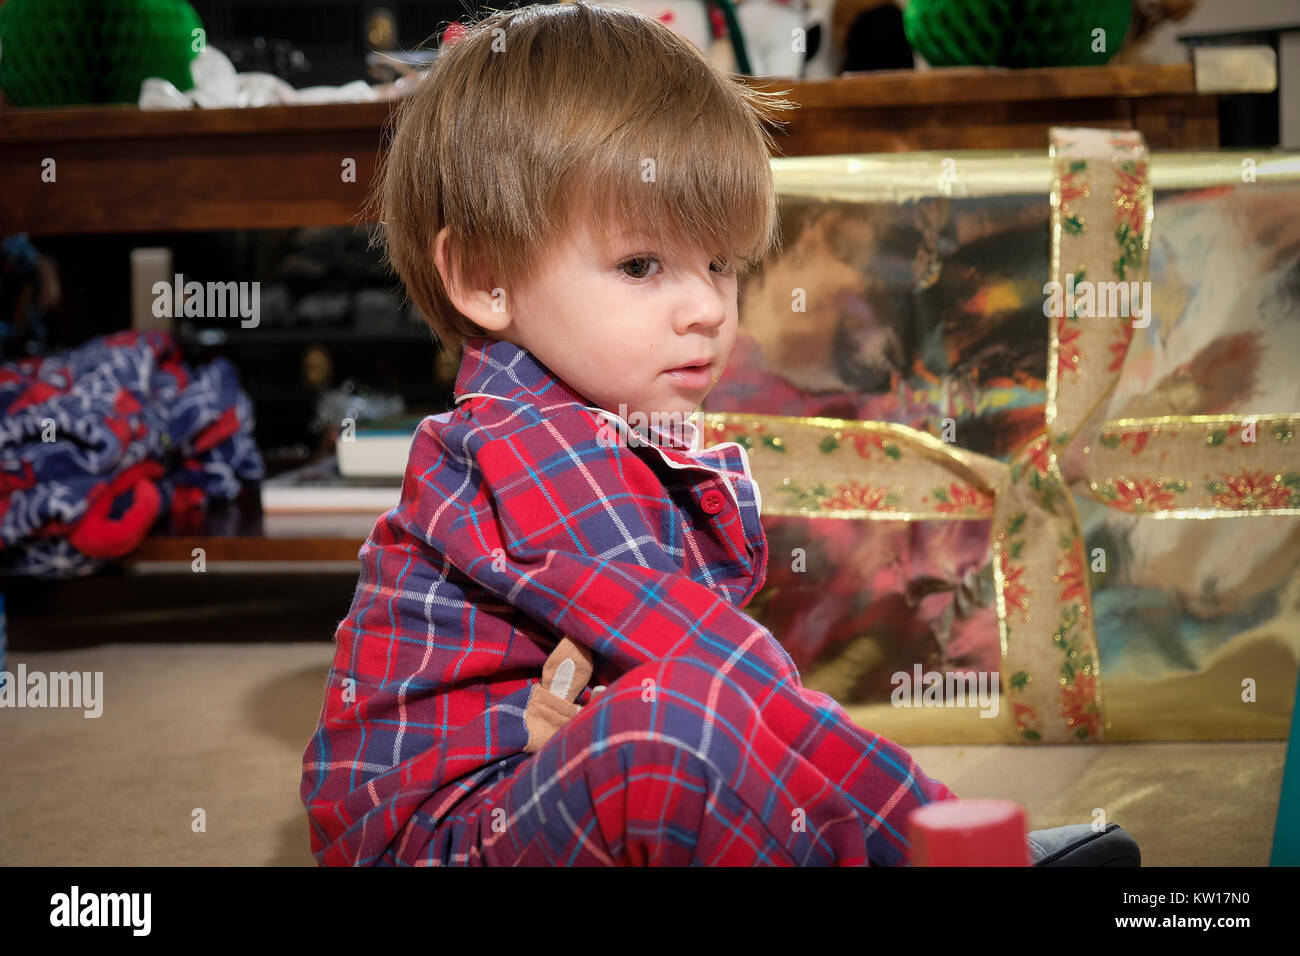 toddler sat on floor in his pajamas playing with toys on Christmas morning - Stock Image